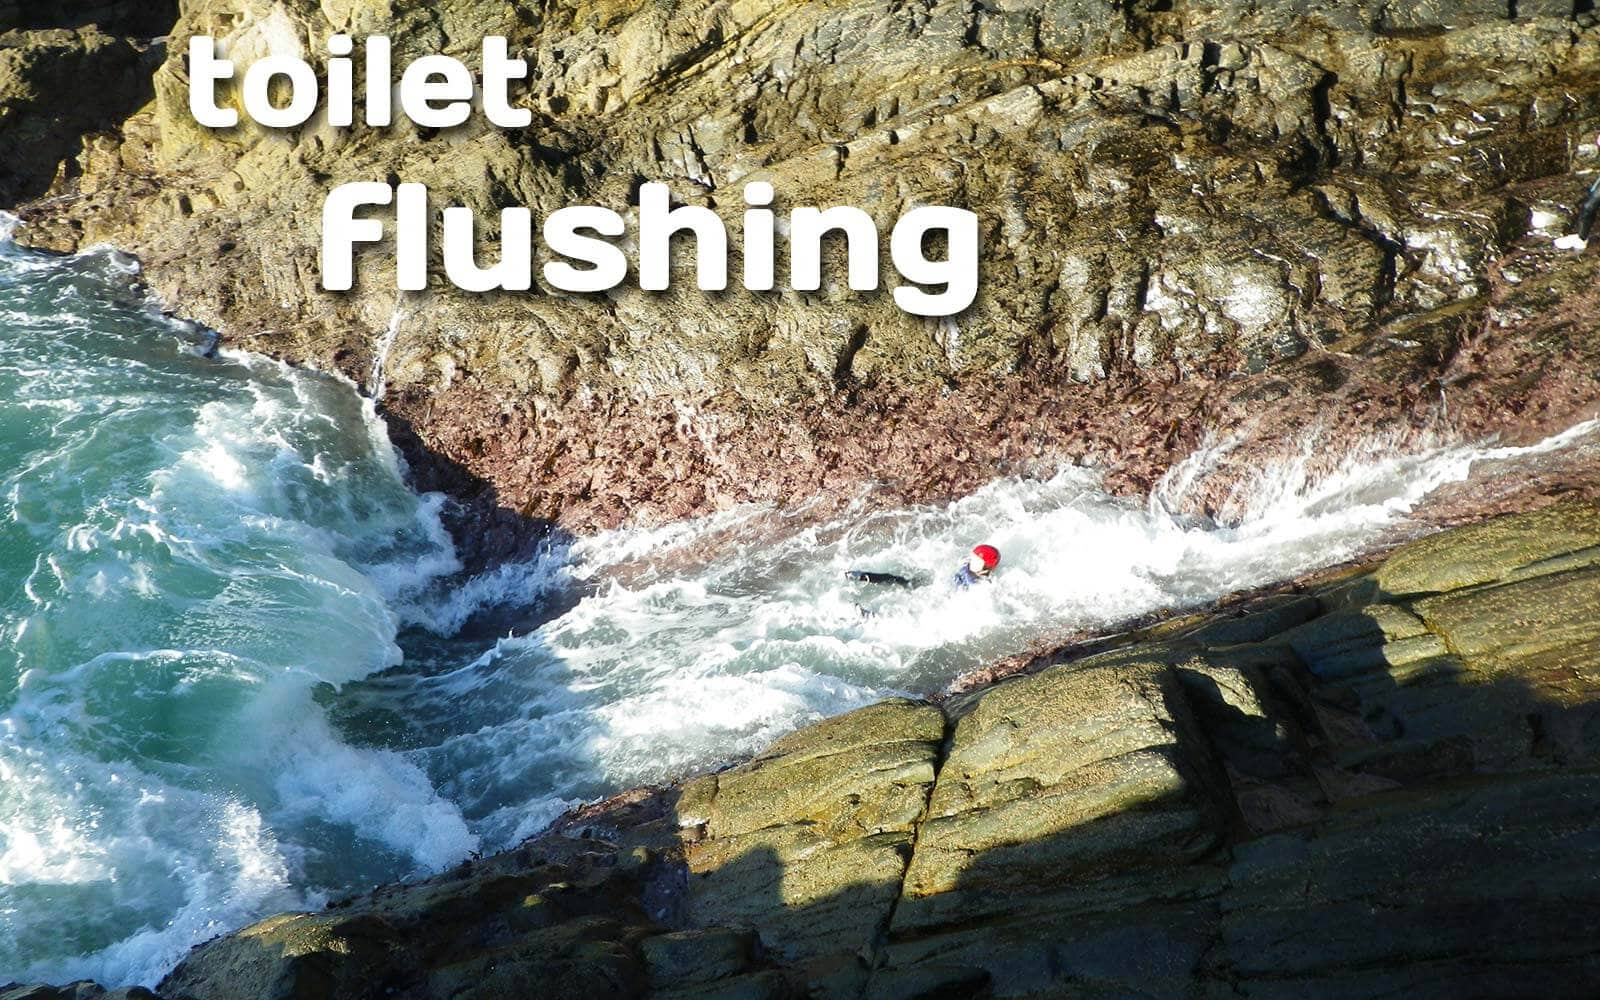 Rough water Coasteering in Pembrokeshire Wales, take a spin in the toilet flush and washing machine